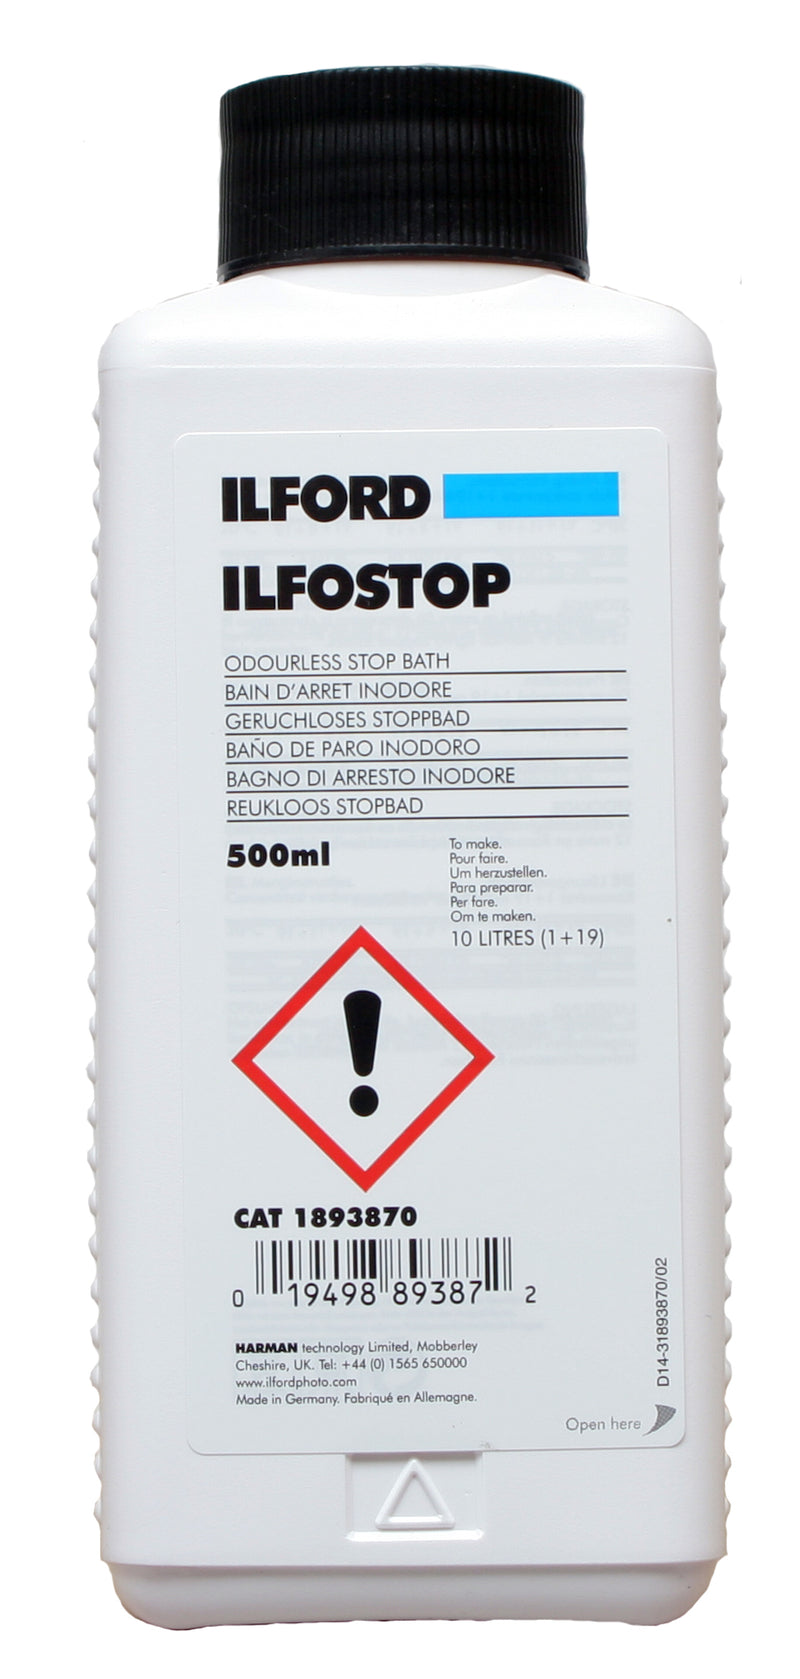 Black and White Paper Processing Chemical Kit (Ilford)